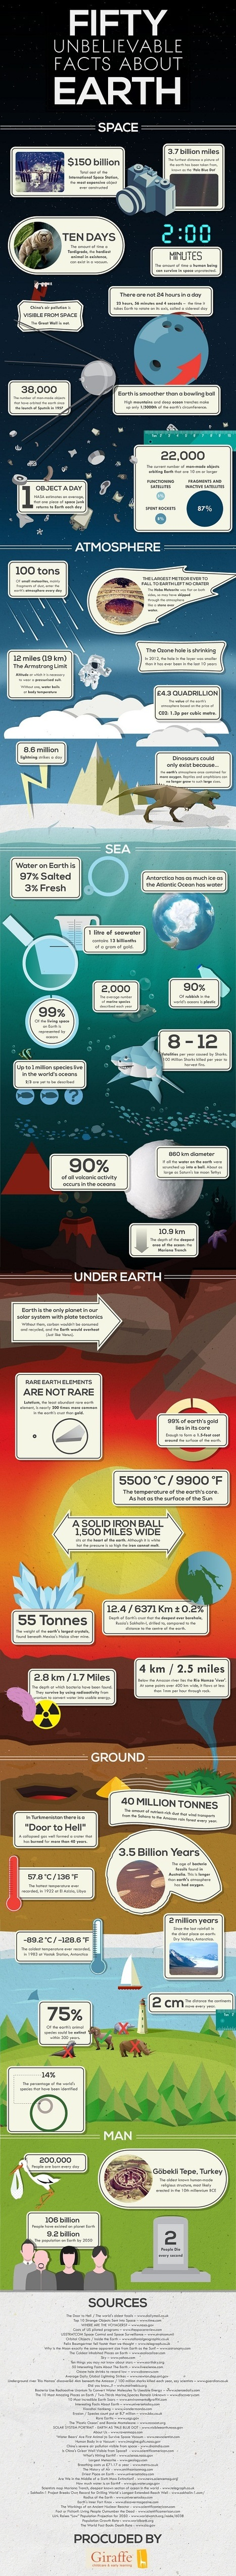 50 Awesome Facts About Earth To Share With Your Class [Infographic] | omnia mea mecum fero | Scoop.it